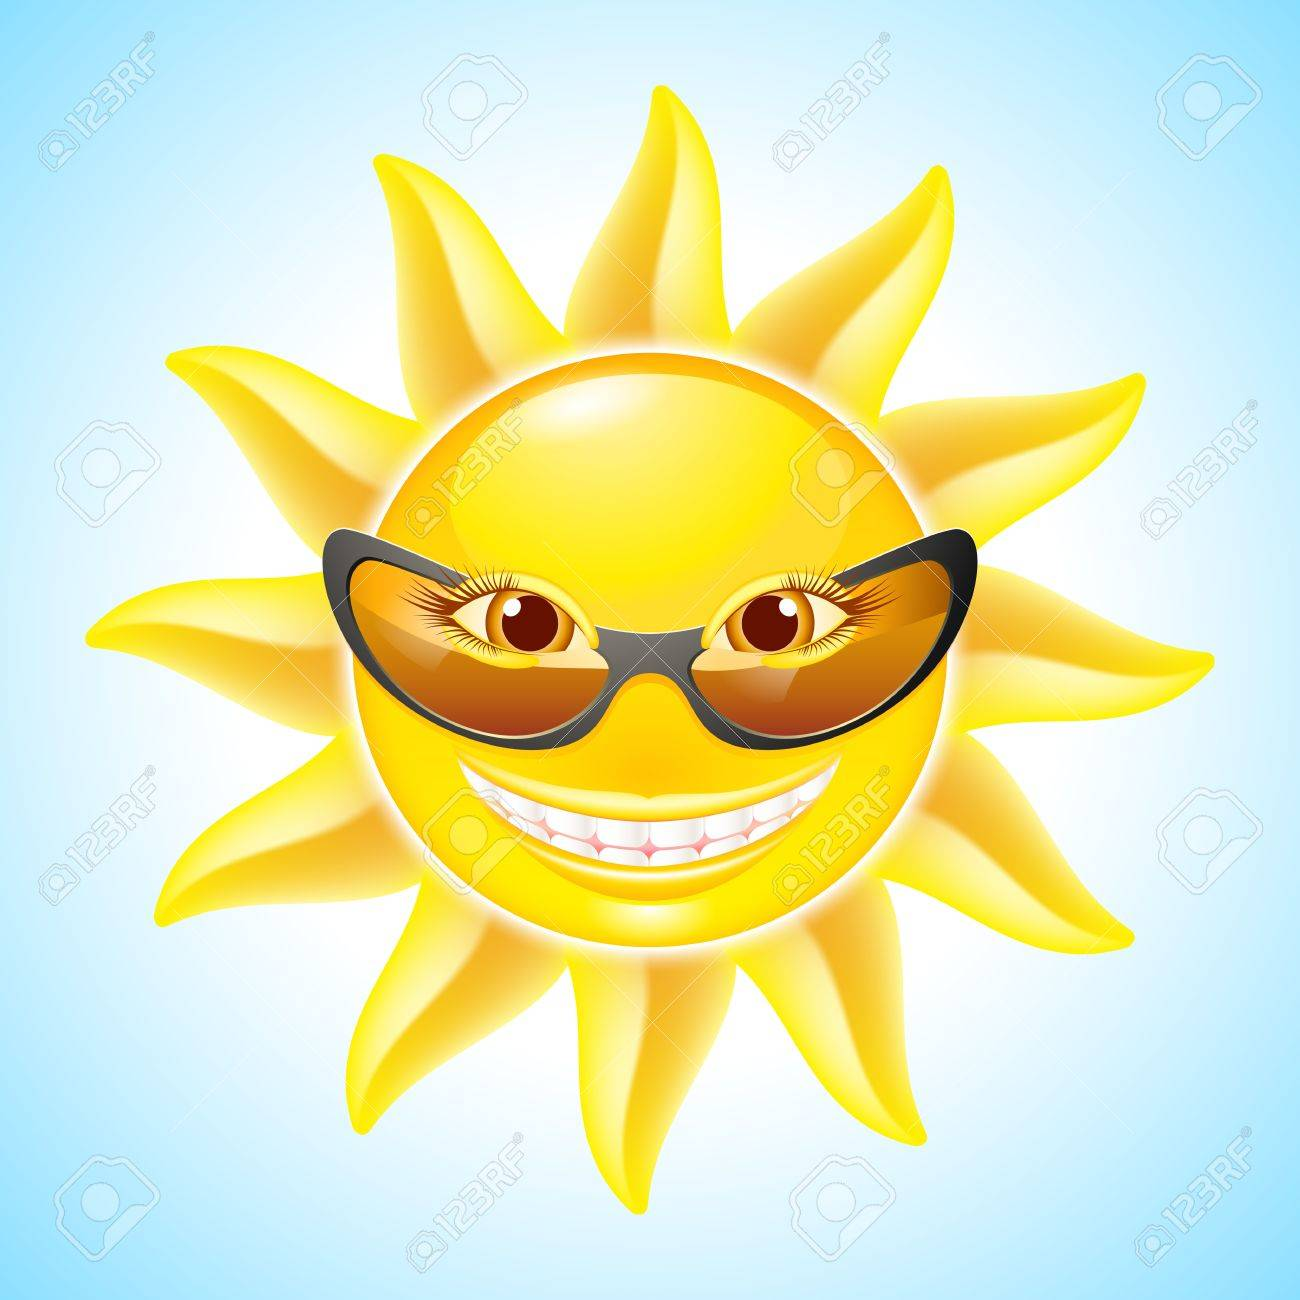 Smiling sun with sunglasses - Cartoon Smiling Sun With Sunglasses See Other Images In My Portfolio Stock Vector 13979489